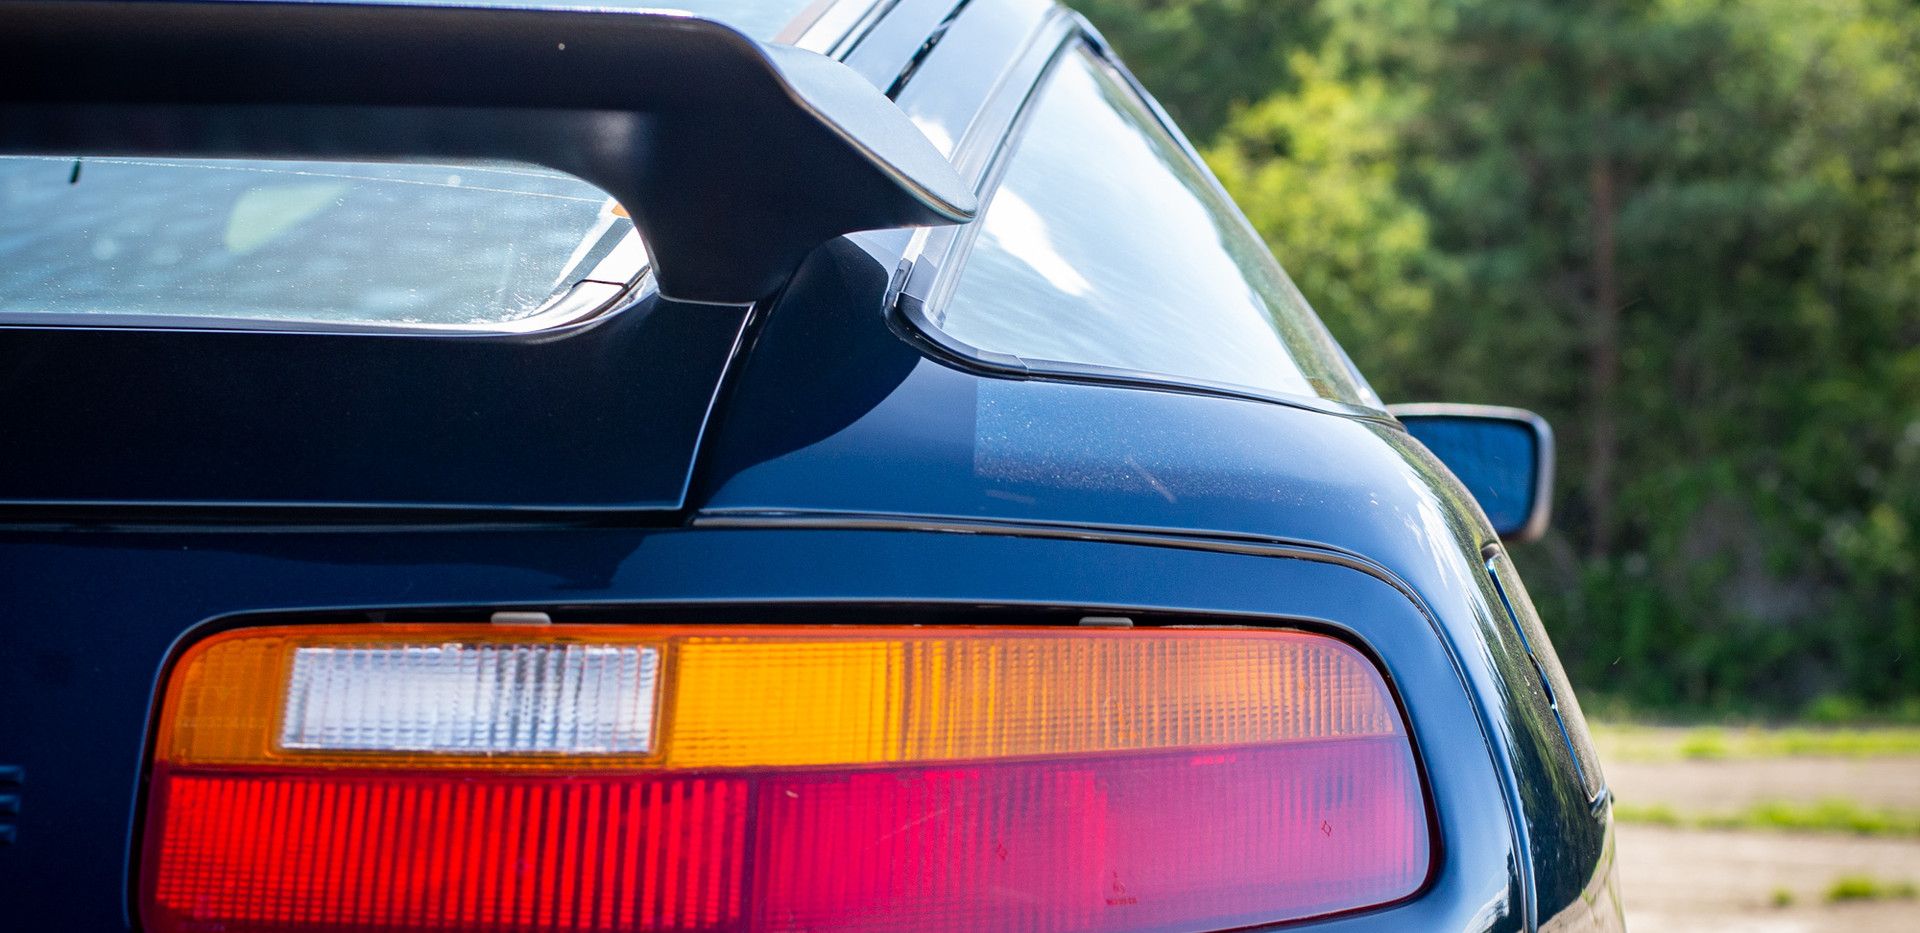 Porsche_928_ForSale Uk London-21.jpg